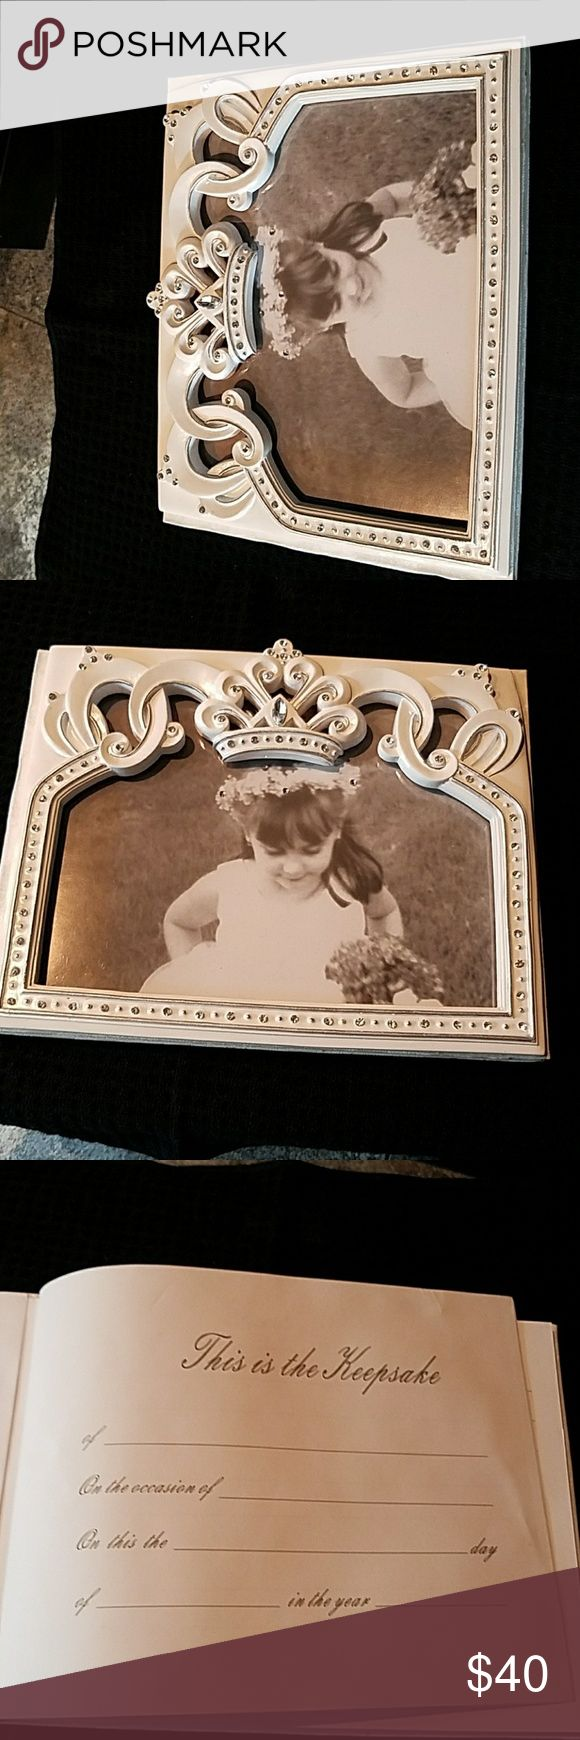 Crown  Wedding Guest  Book New never used.   The perfect guest book and pen set for a beautiful princess! Each enchanting accessory item is made of durable poly resin material with lovely tiara shaped designs accented with perfectly placed clear crystals. Other